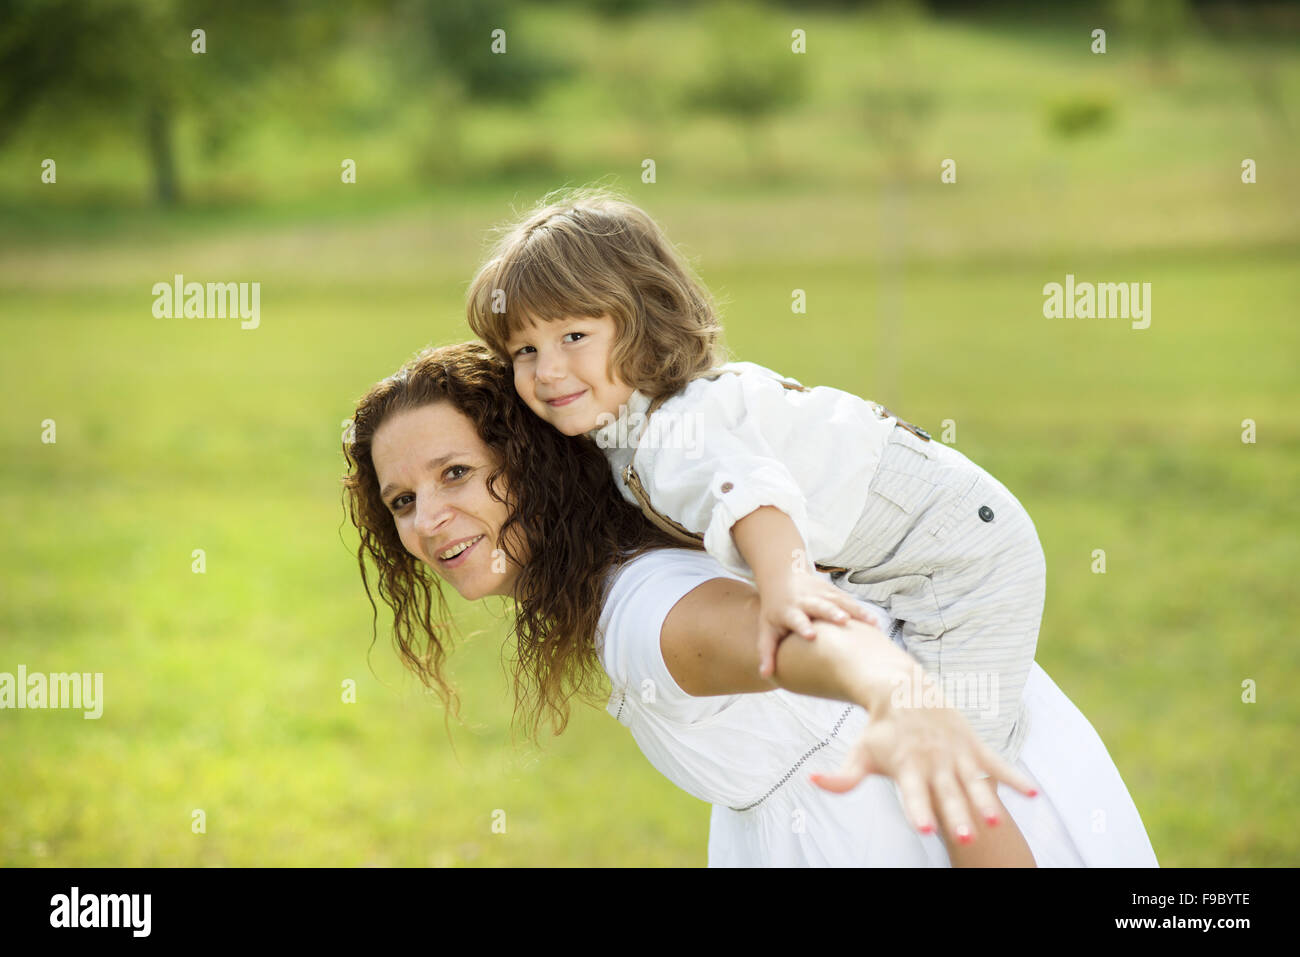 Mother and son playing funny games together - Stock Image